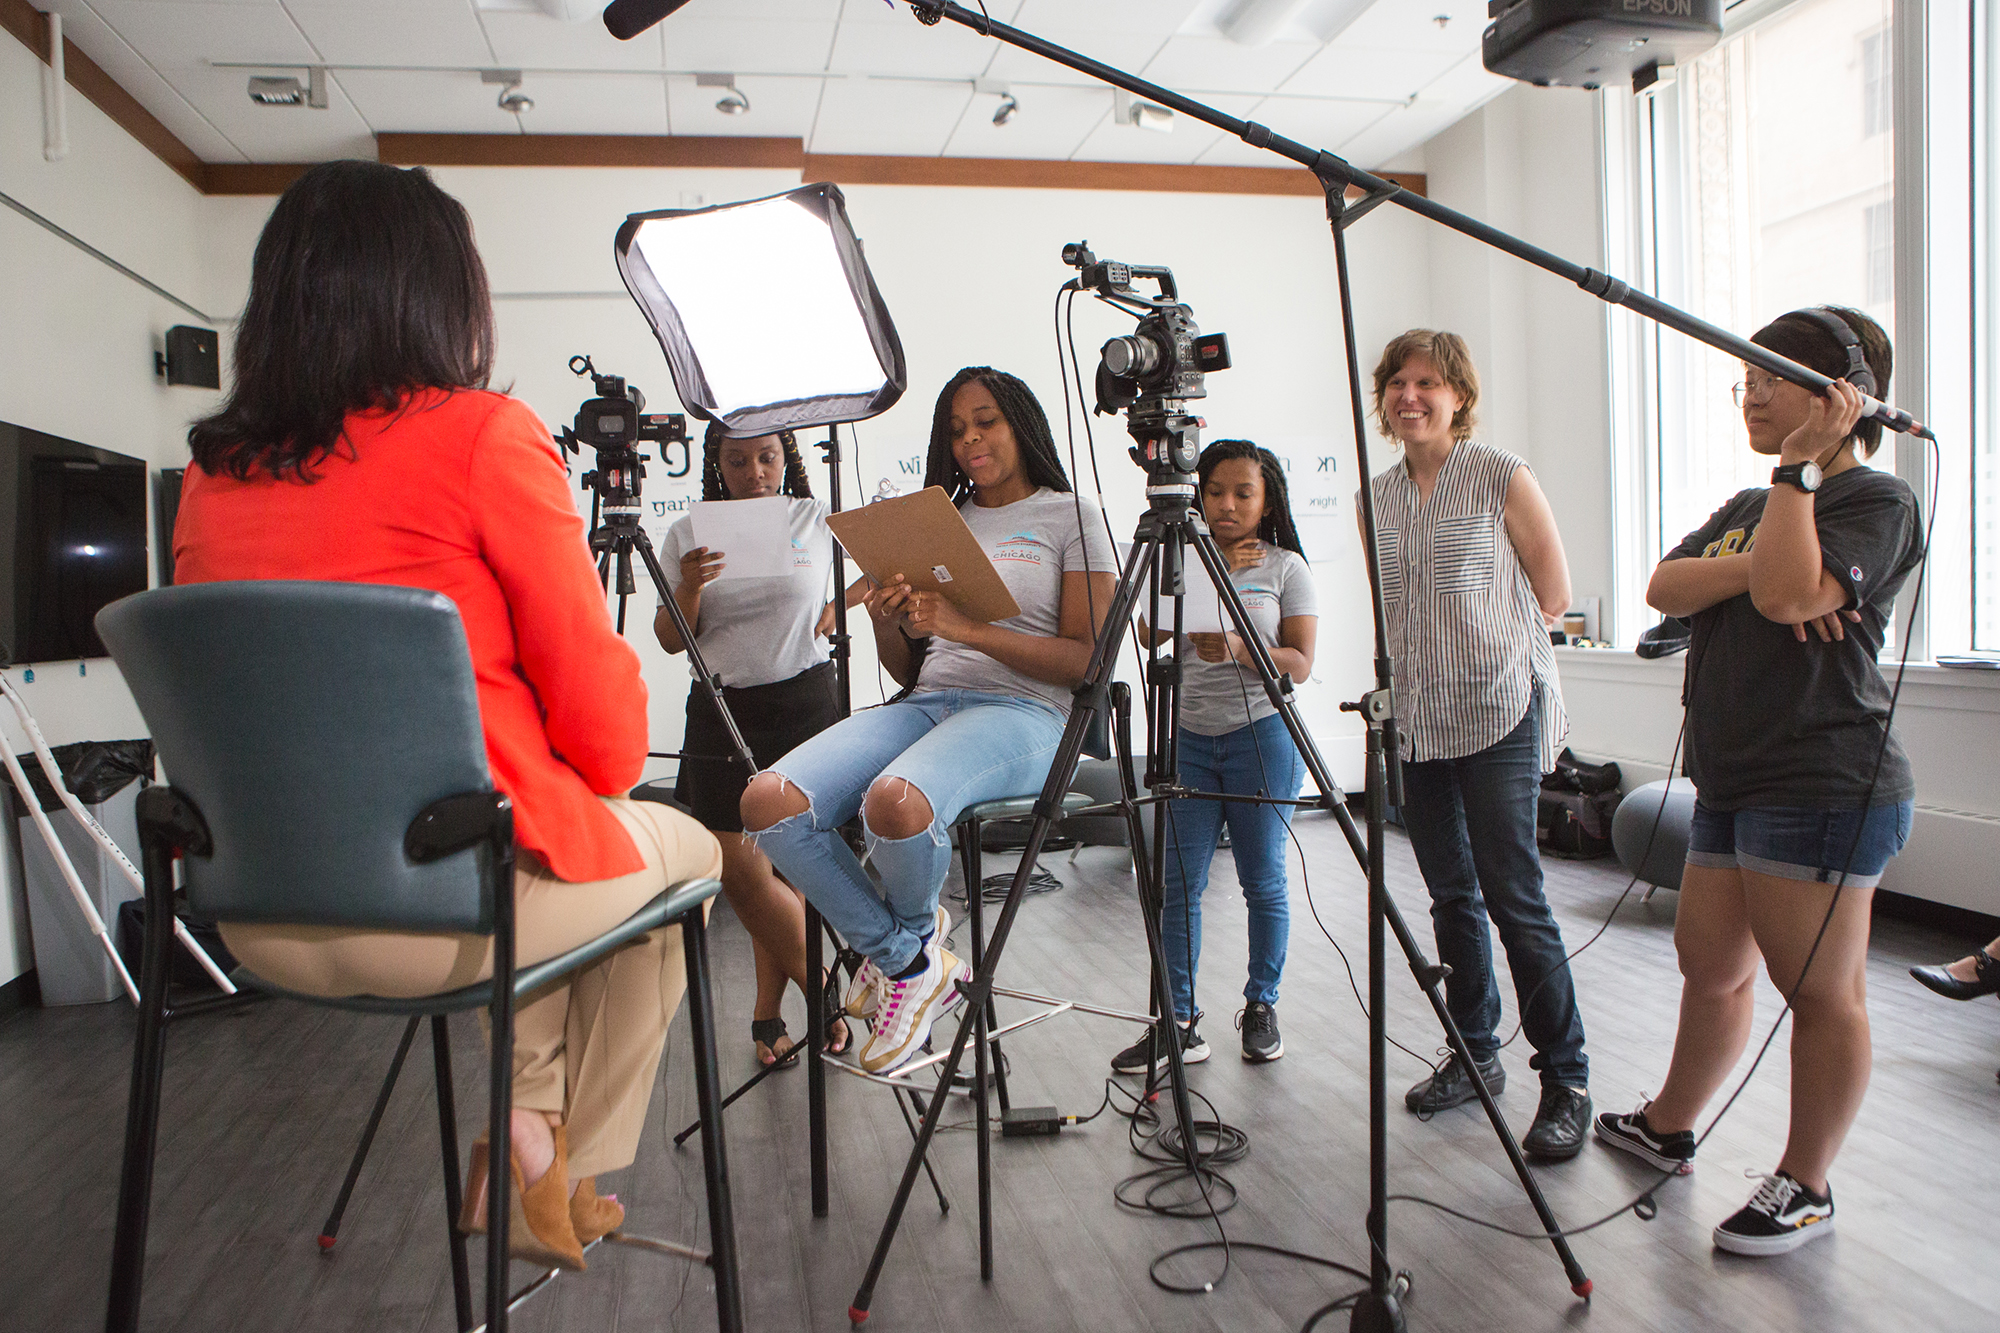 Program participants interview an expert for their documentary with guidance from DePaul faculty and graduate students.